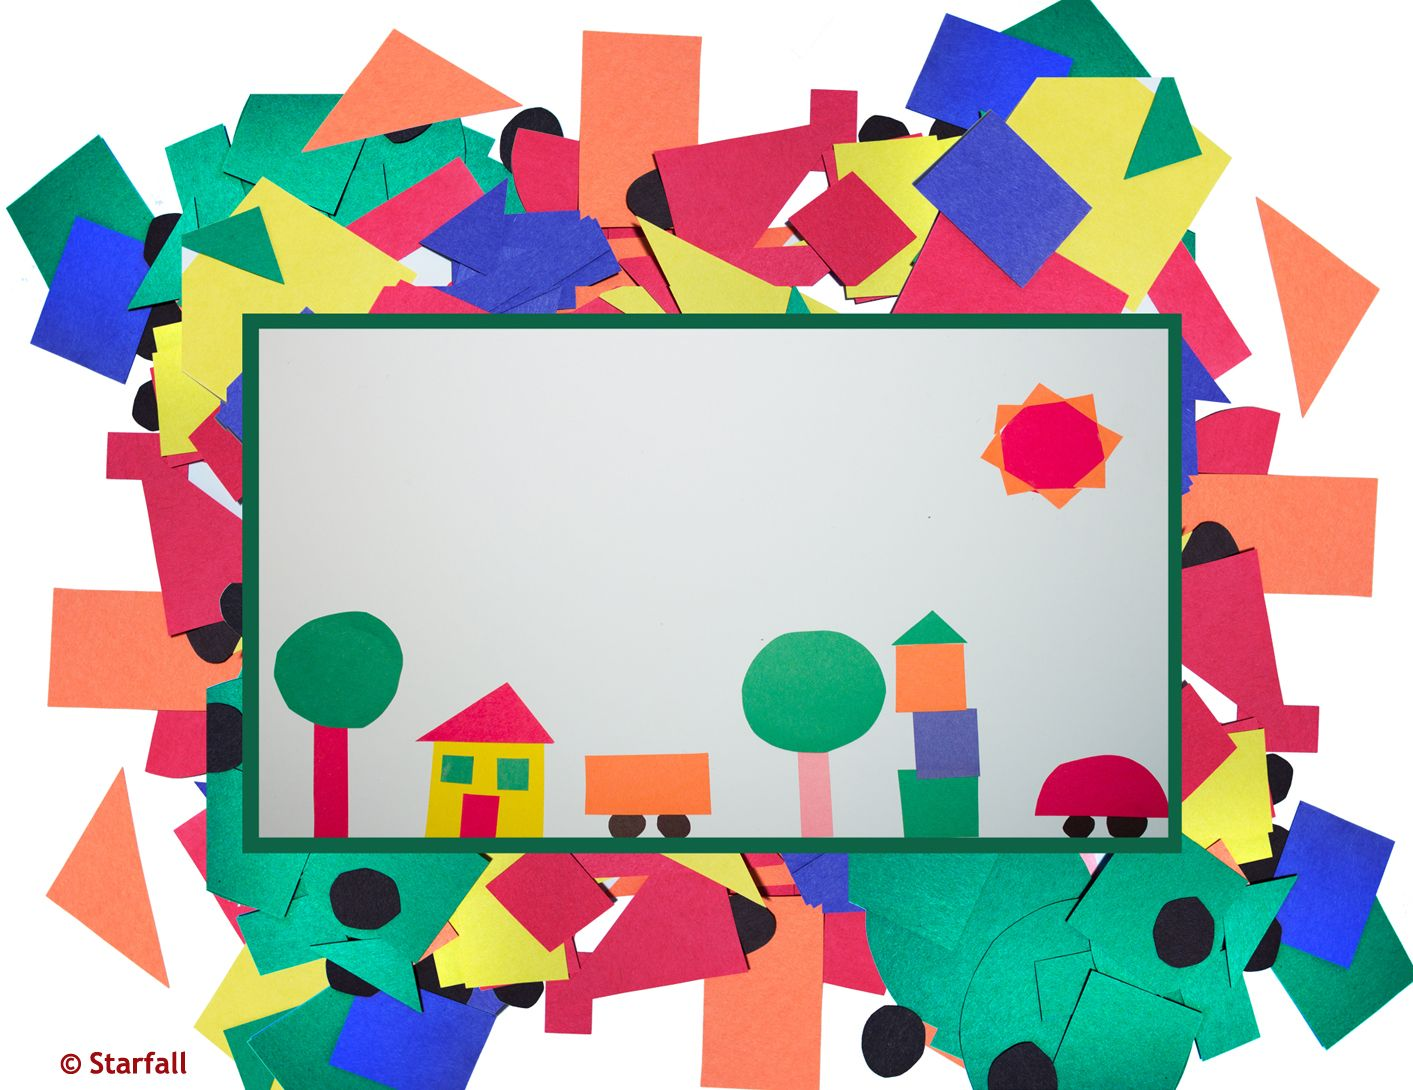 Make A Picture With Geometric Shapes Circle Square